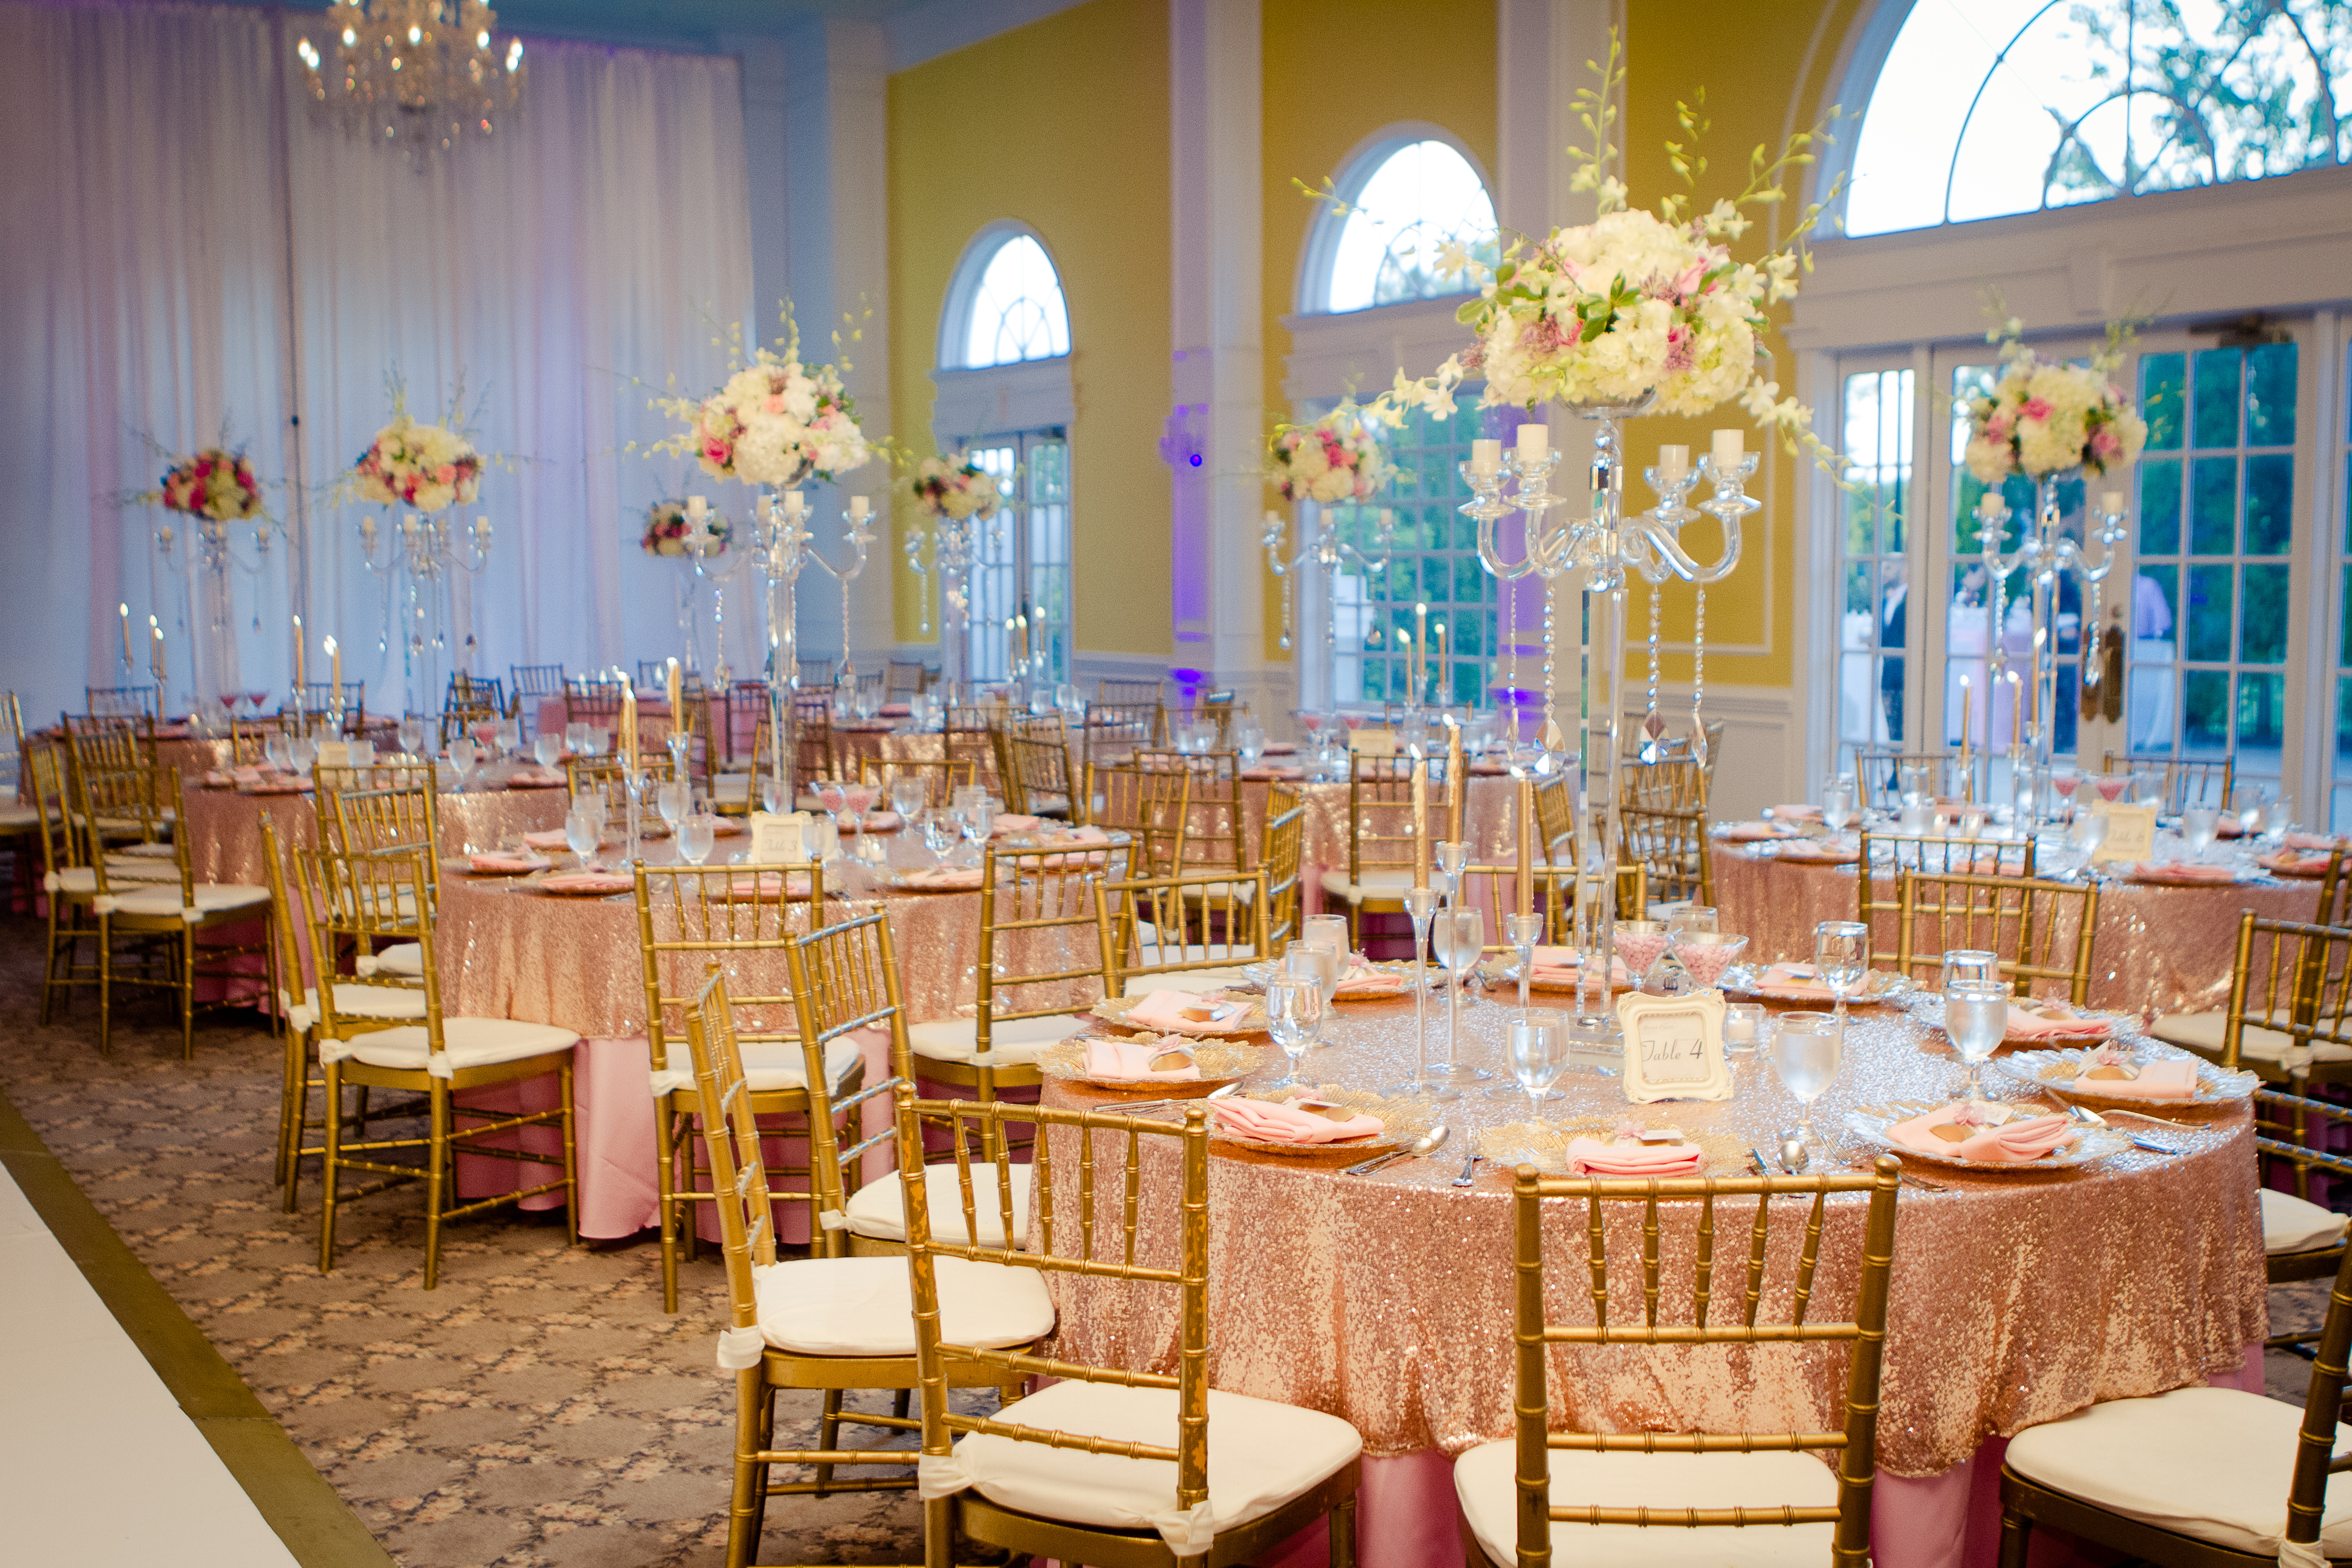 sequin tablecloths where to find affordable ones tablecloths for wedding Sequin Tablecloths where to find affordable ones